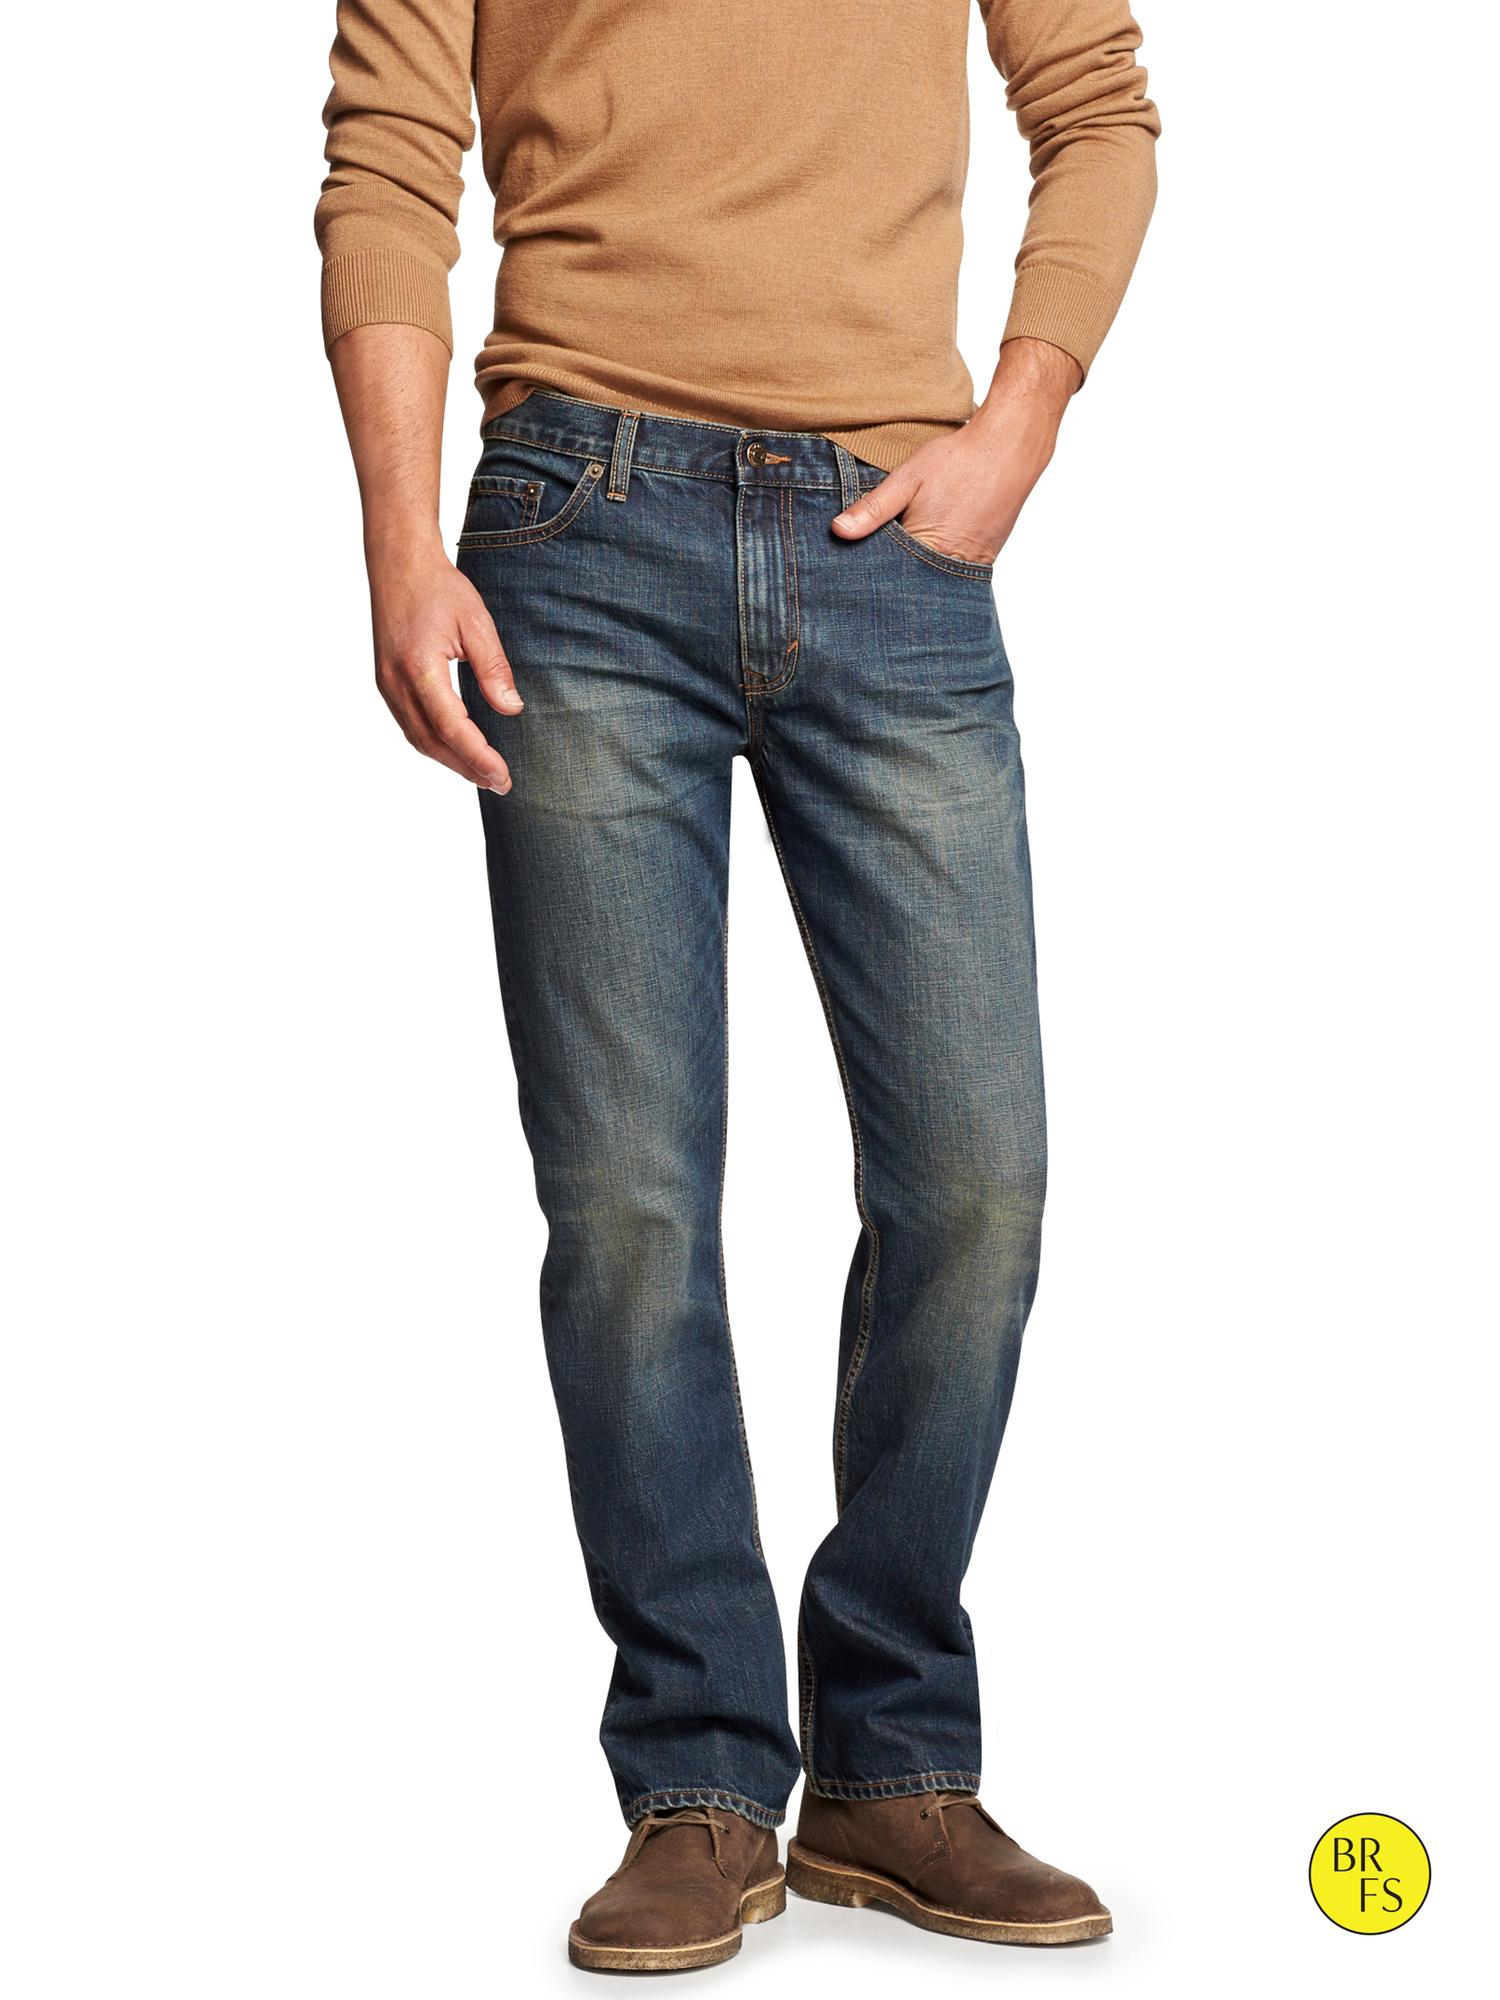 See all results for banana republic mens jeans. Banana Republic. Men's Straight-Fit Stretch Rinse Faux Selvedge Jean $ 79 99 Prime. Banana Republic. Mens Straight-Fit Stretch Dark-Wash Jeans $ 79 99 Prime. Banana Republic. Men's Straight-Fit Stretch Medium-Wash Jean $ 79 99 Prime. Banana .